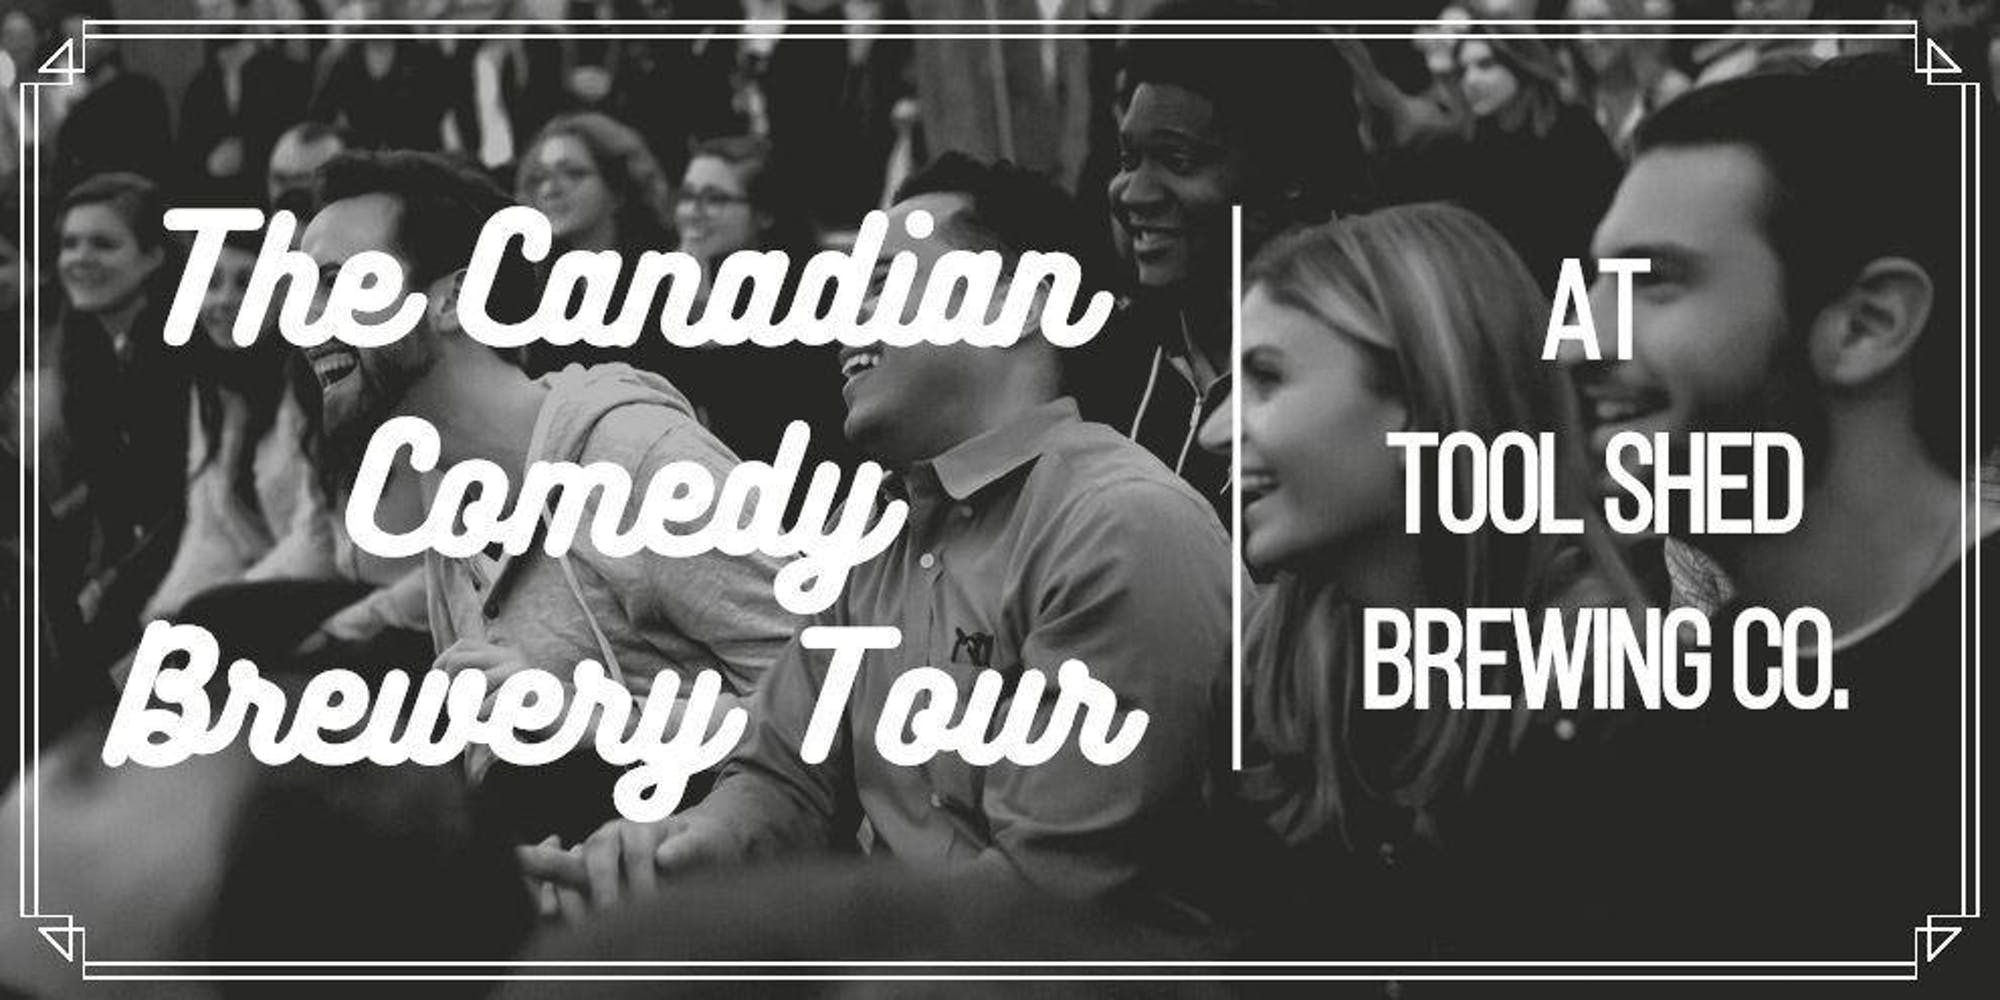 The Canadian Comedy Brewery Tour @ Tool Shed Brewing Co.